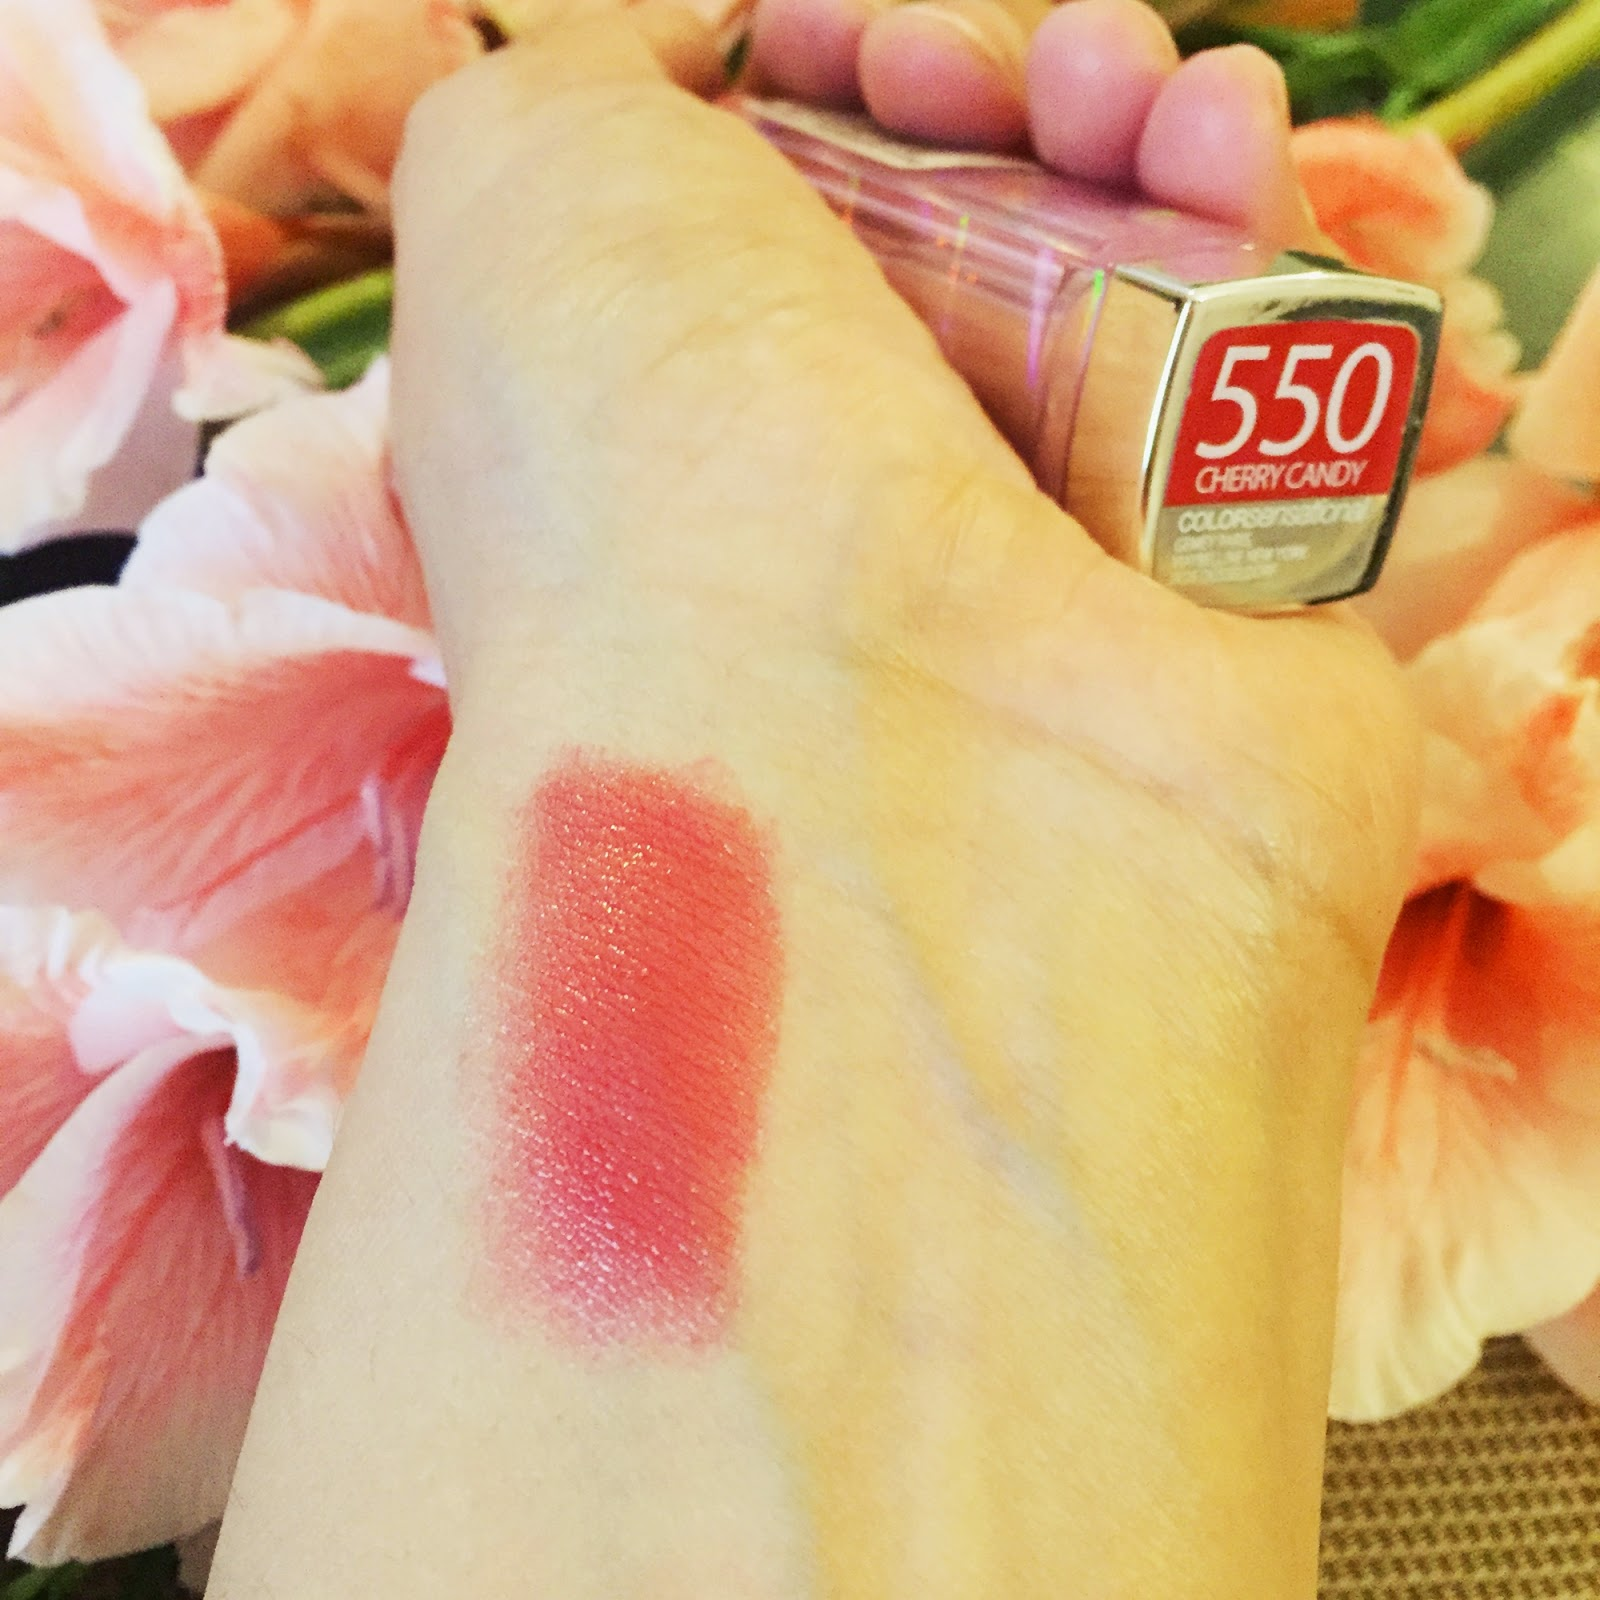 Maybelline ColorSensational Lipstick in Cherry Candy